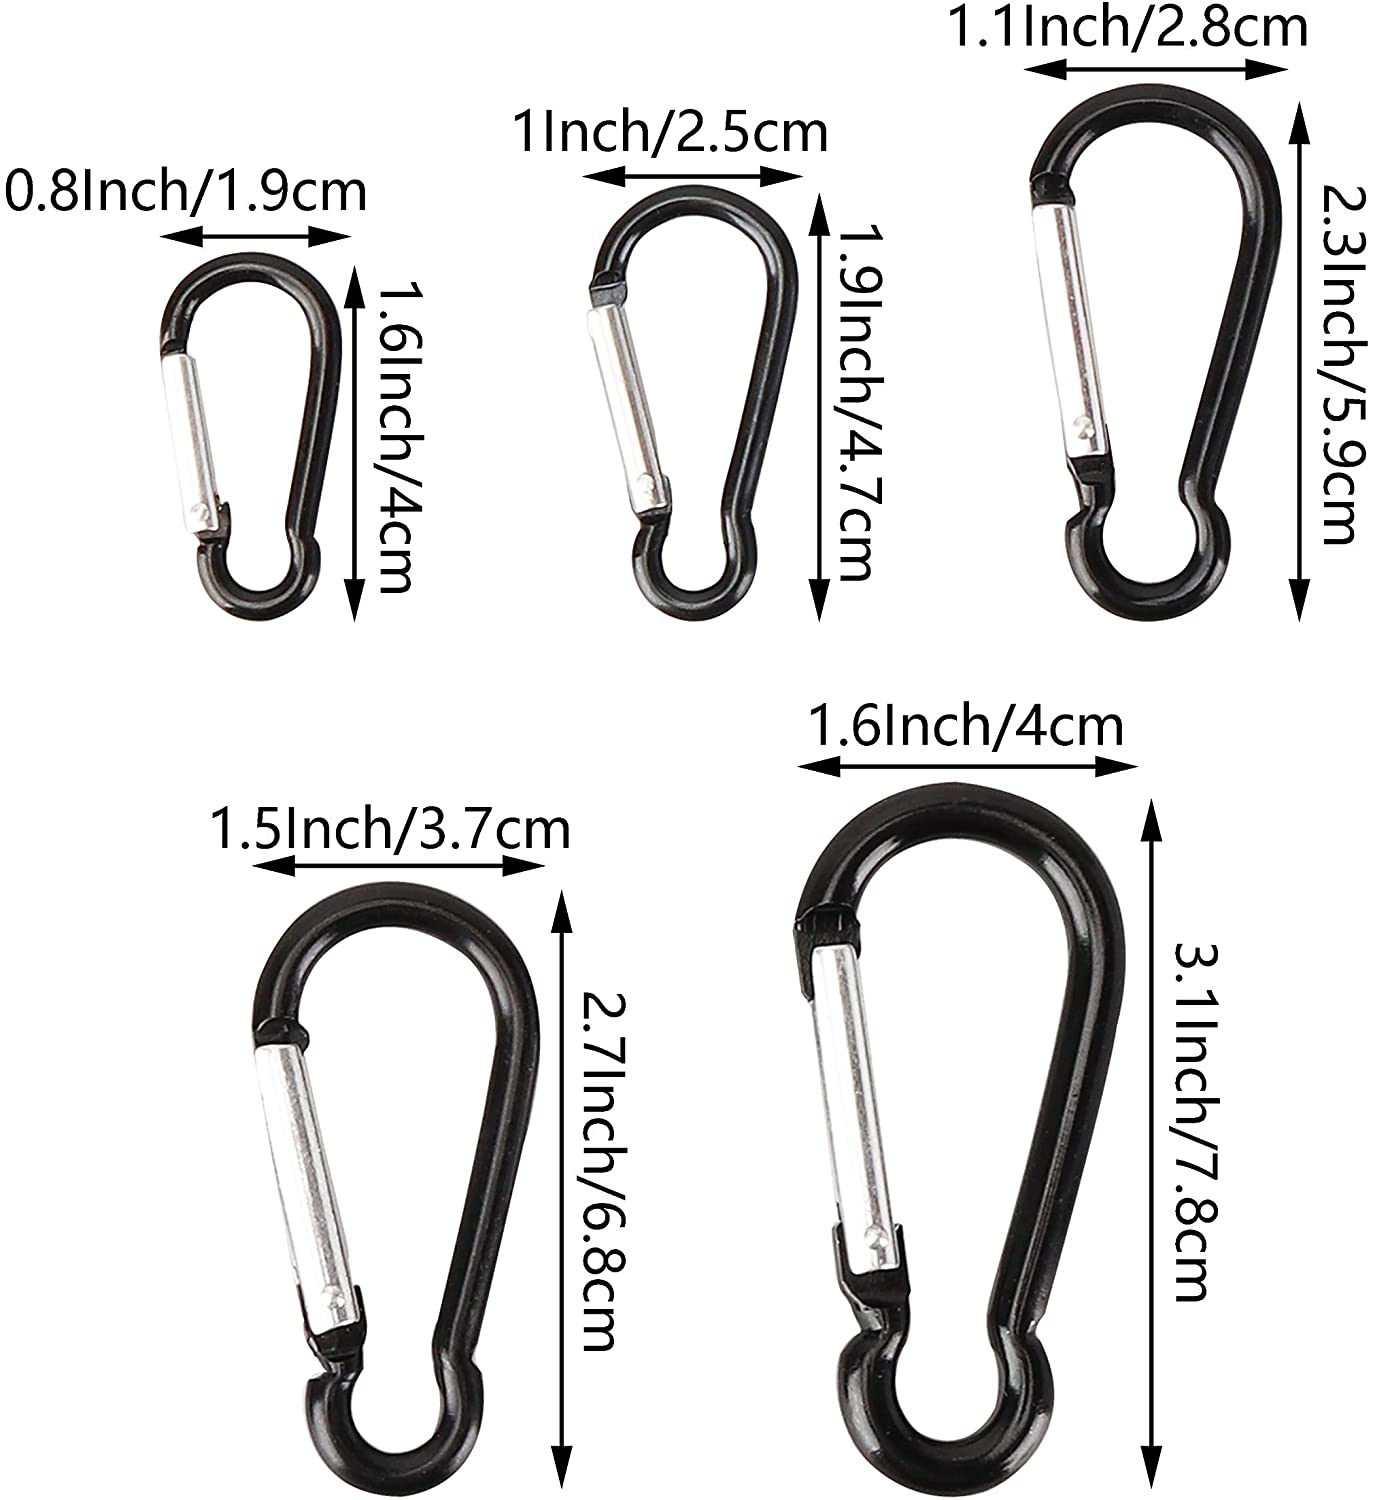 10 Pcs SWATOM Aluminum Alloy Carabiner Clip 1.6//1.9//2.3//2.7//3.1 Inches Spring Snap Hook Keyring Carabiners for Camping Traveling Hiking Keychains Outdoor Accessories Black